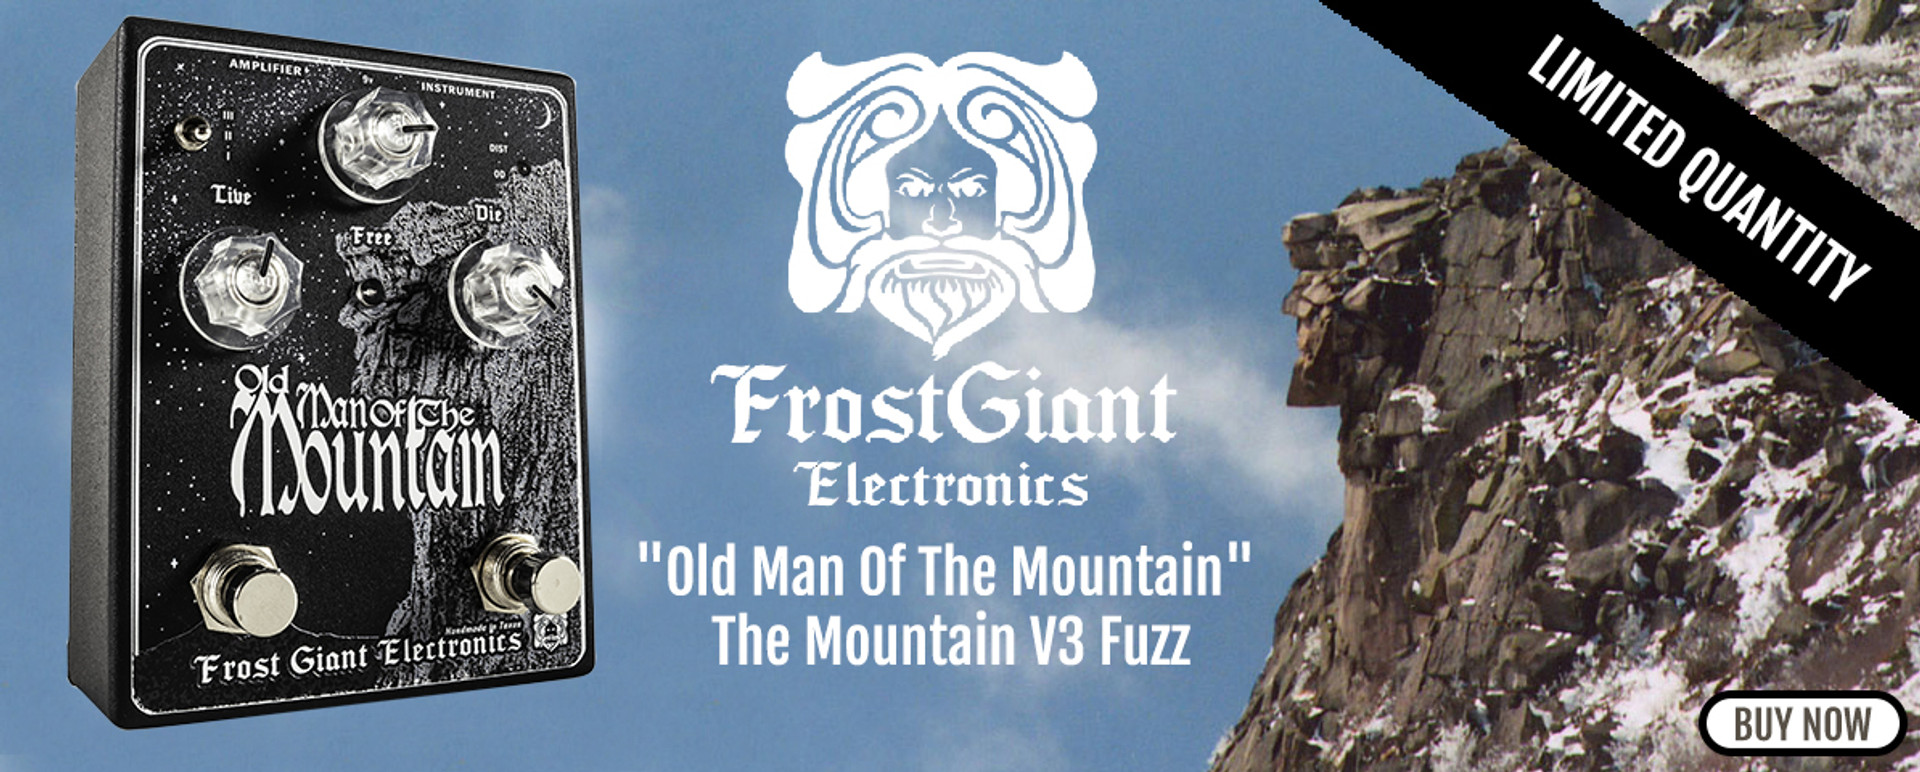 FROST GIANT MOUNTAIN PEDAL